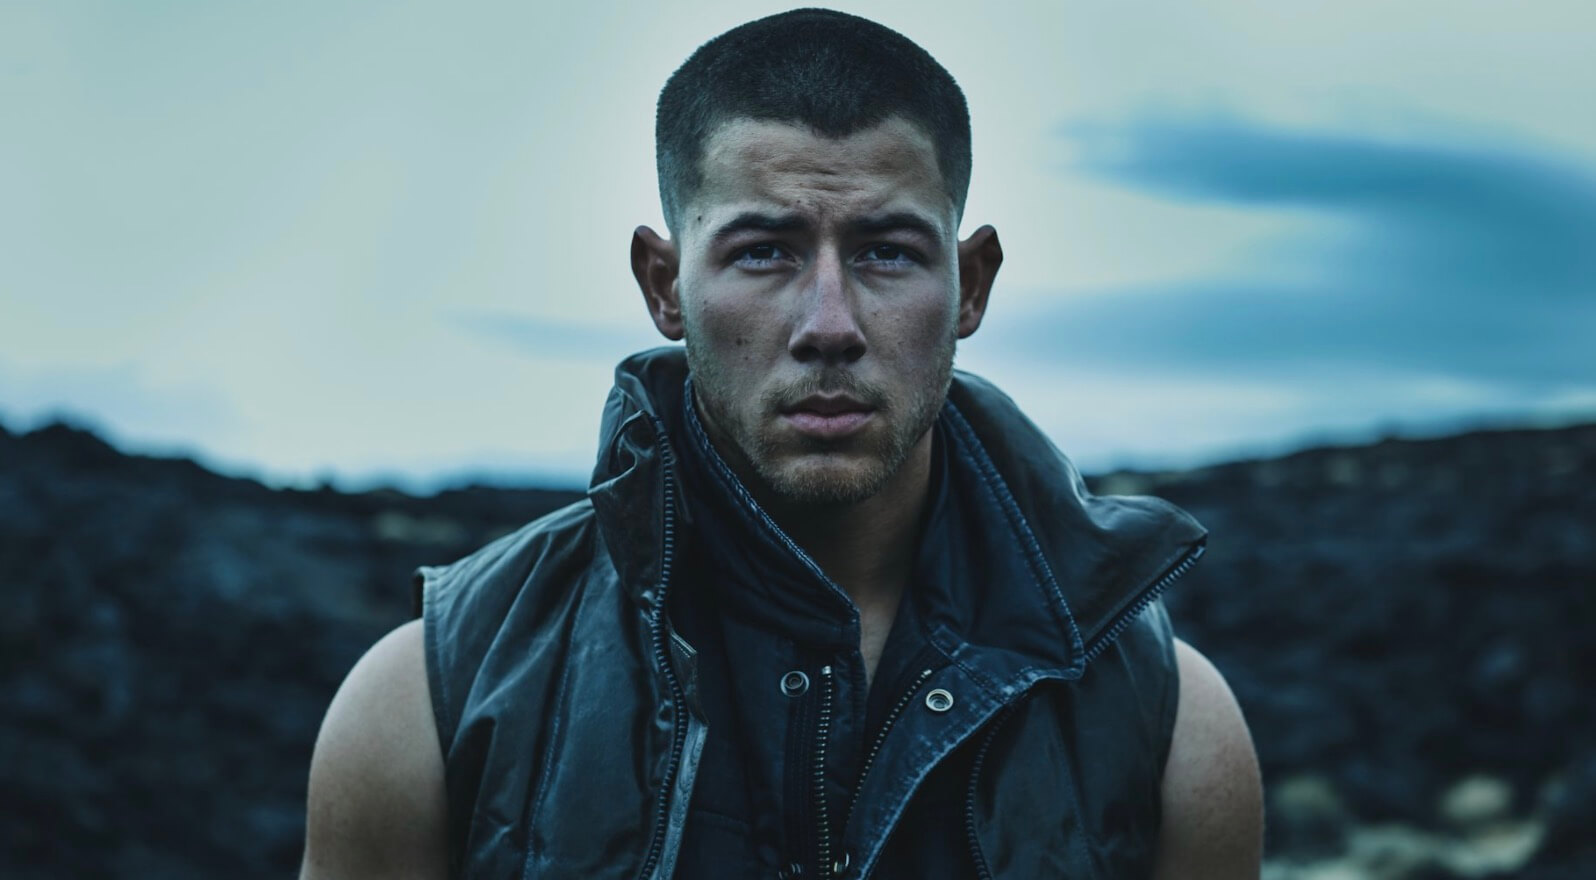 Nick Jonas third solo album